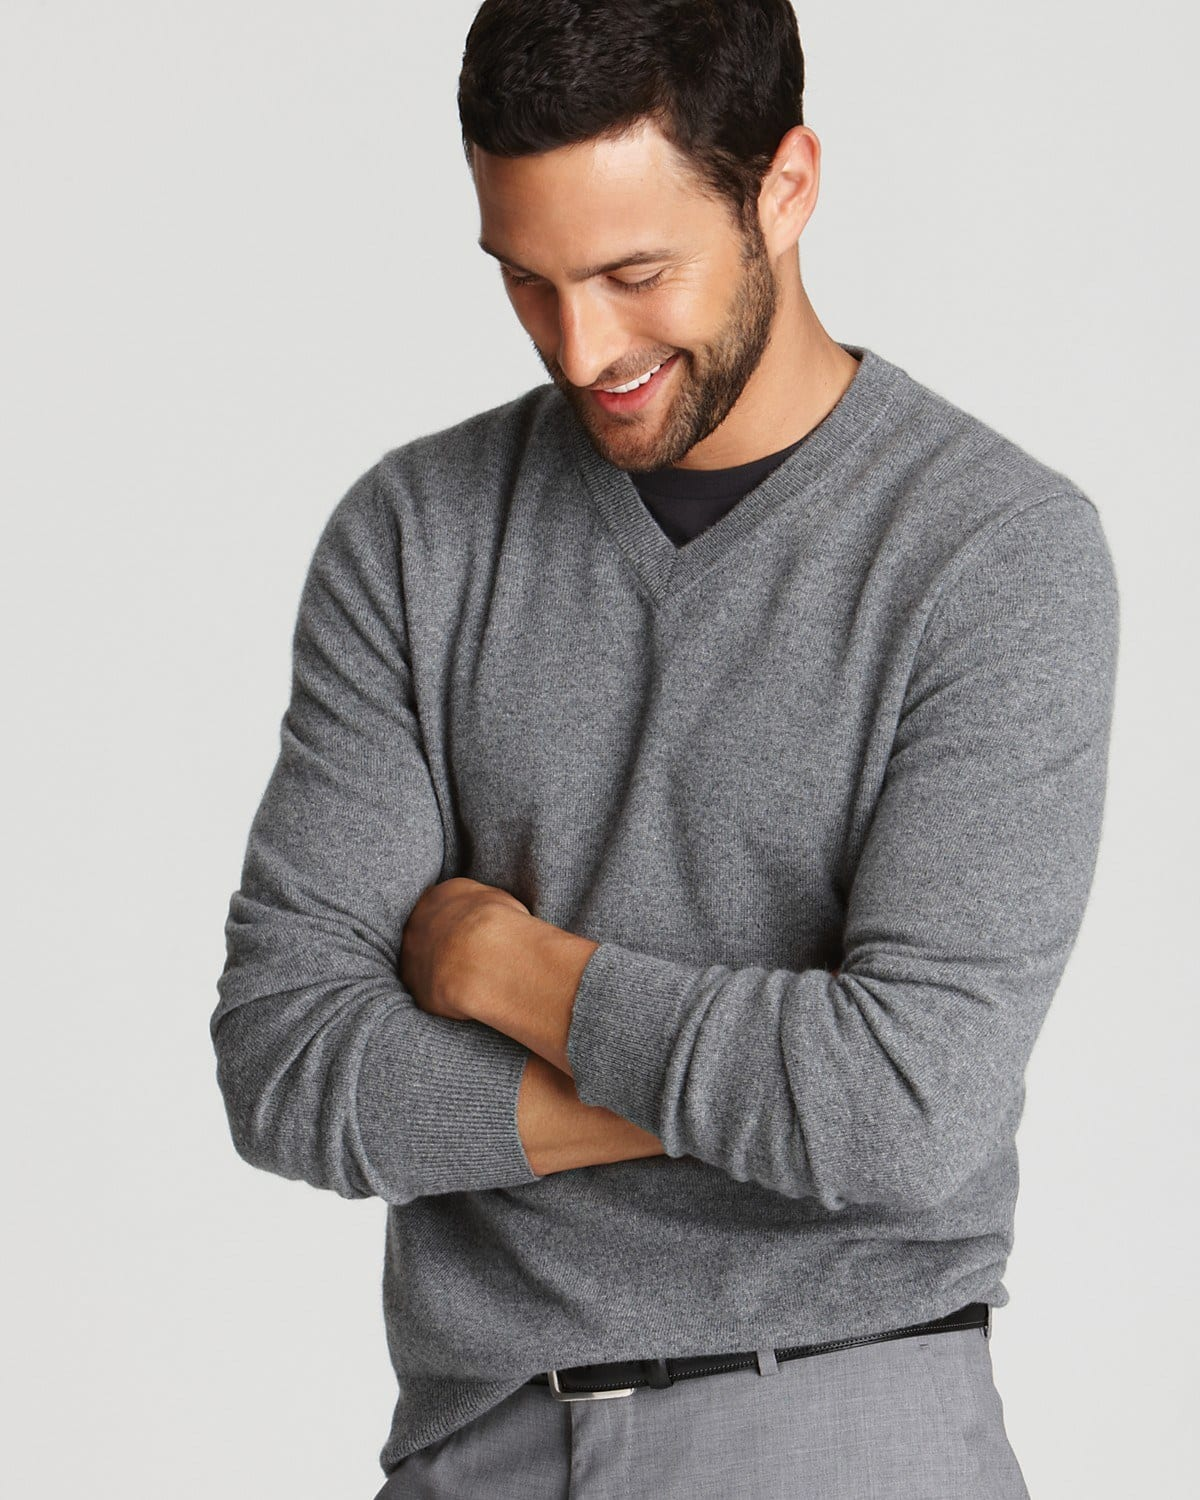 Sweater outfits for men \u2013 17 Ways to Wear Sweaters Fashionably